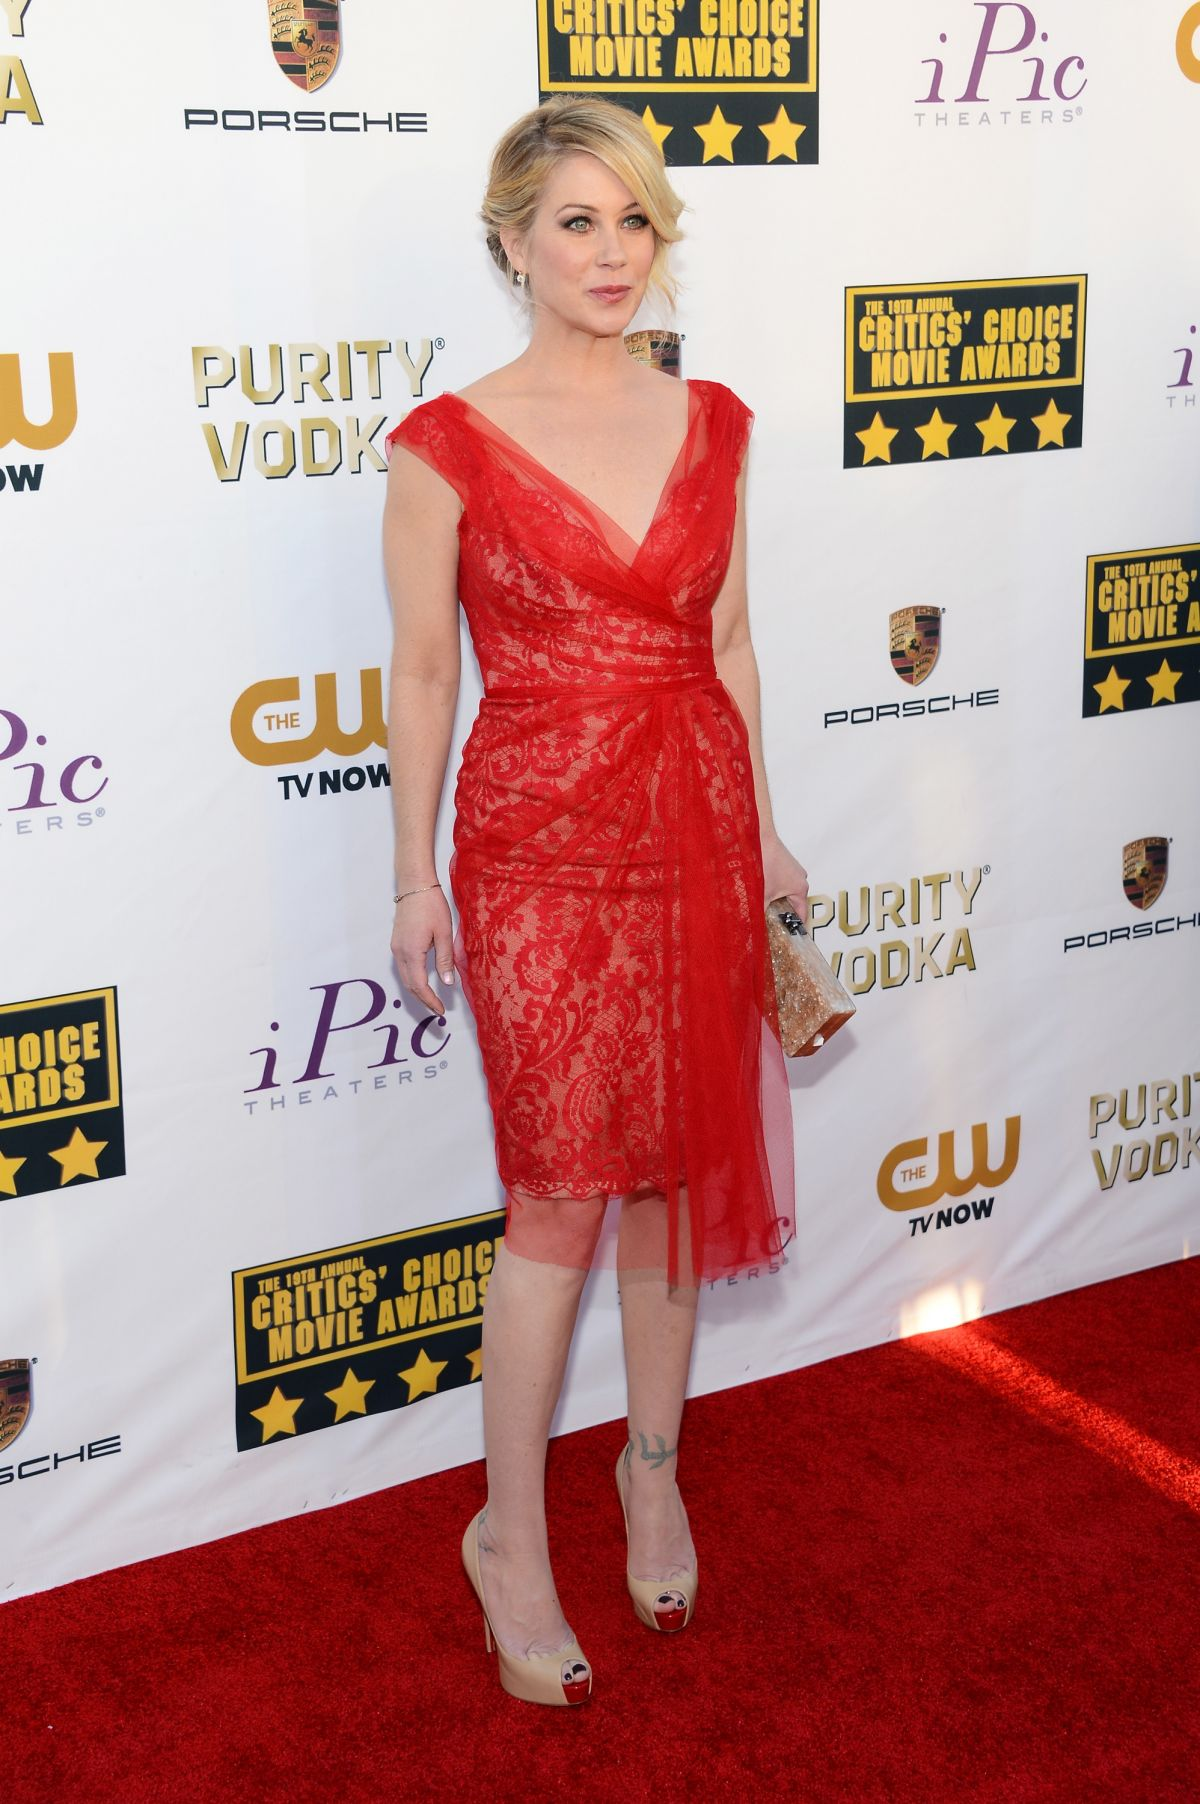 CHRISTINA APPLEGATE at Critic's Choice Awards in Santa Monica